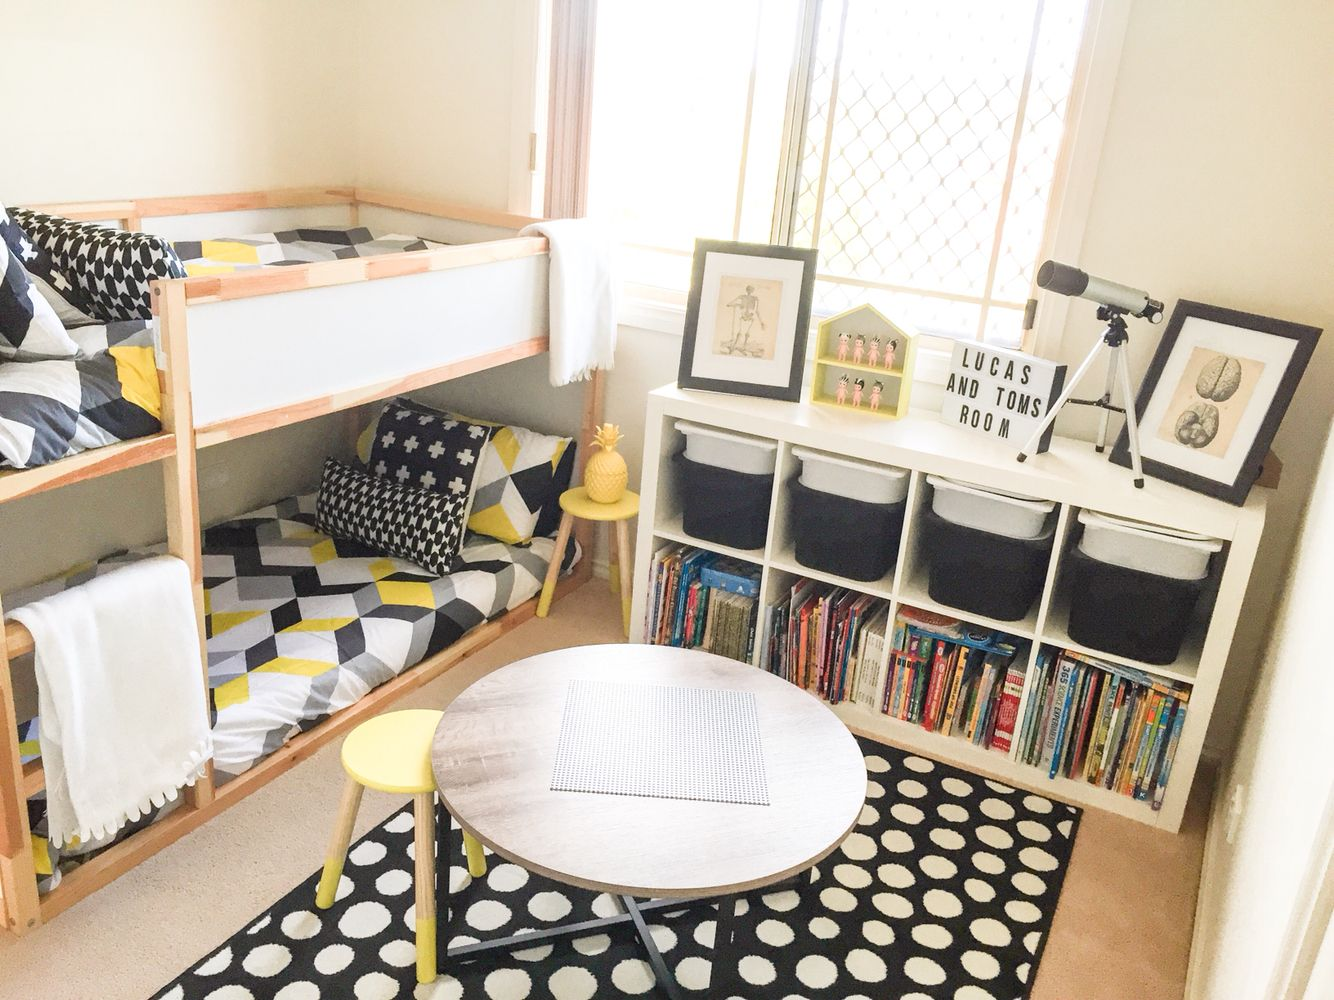 shared boys geometrical bedroom combination of ikea and kmart styling